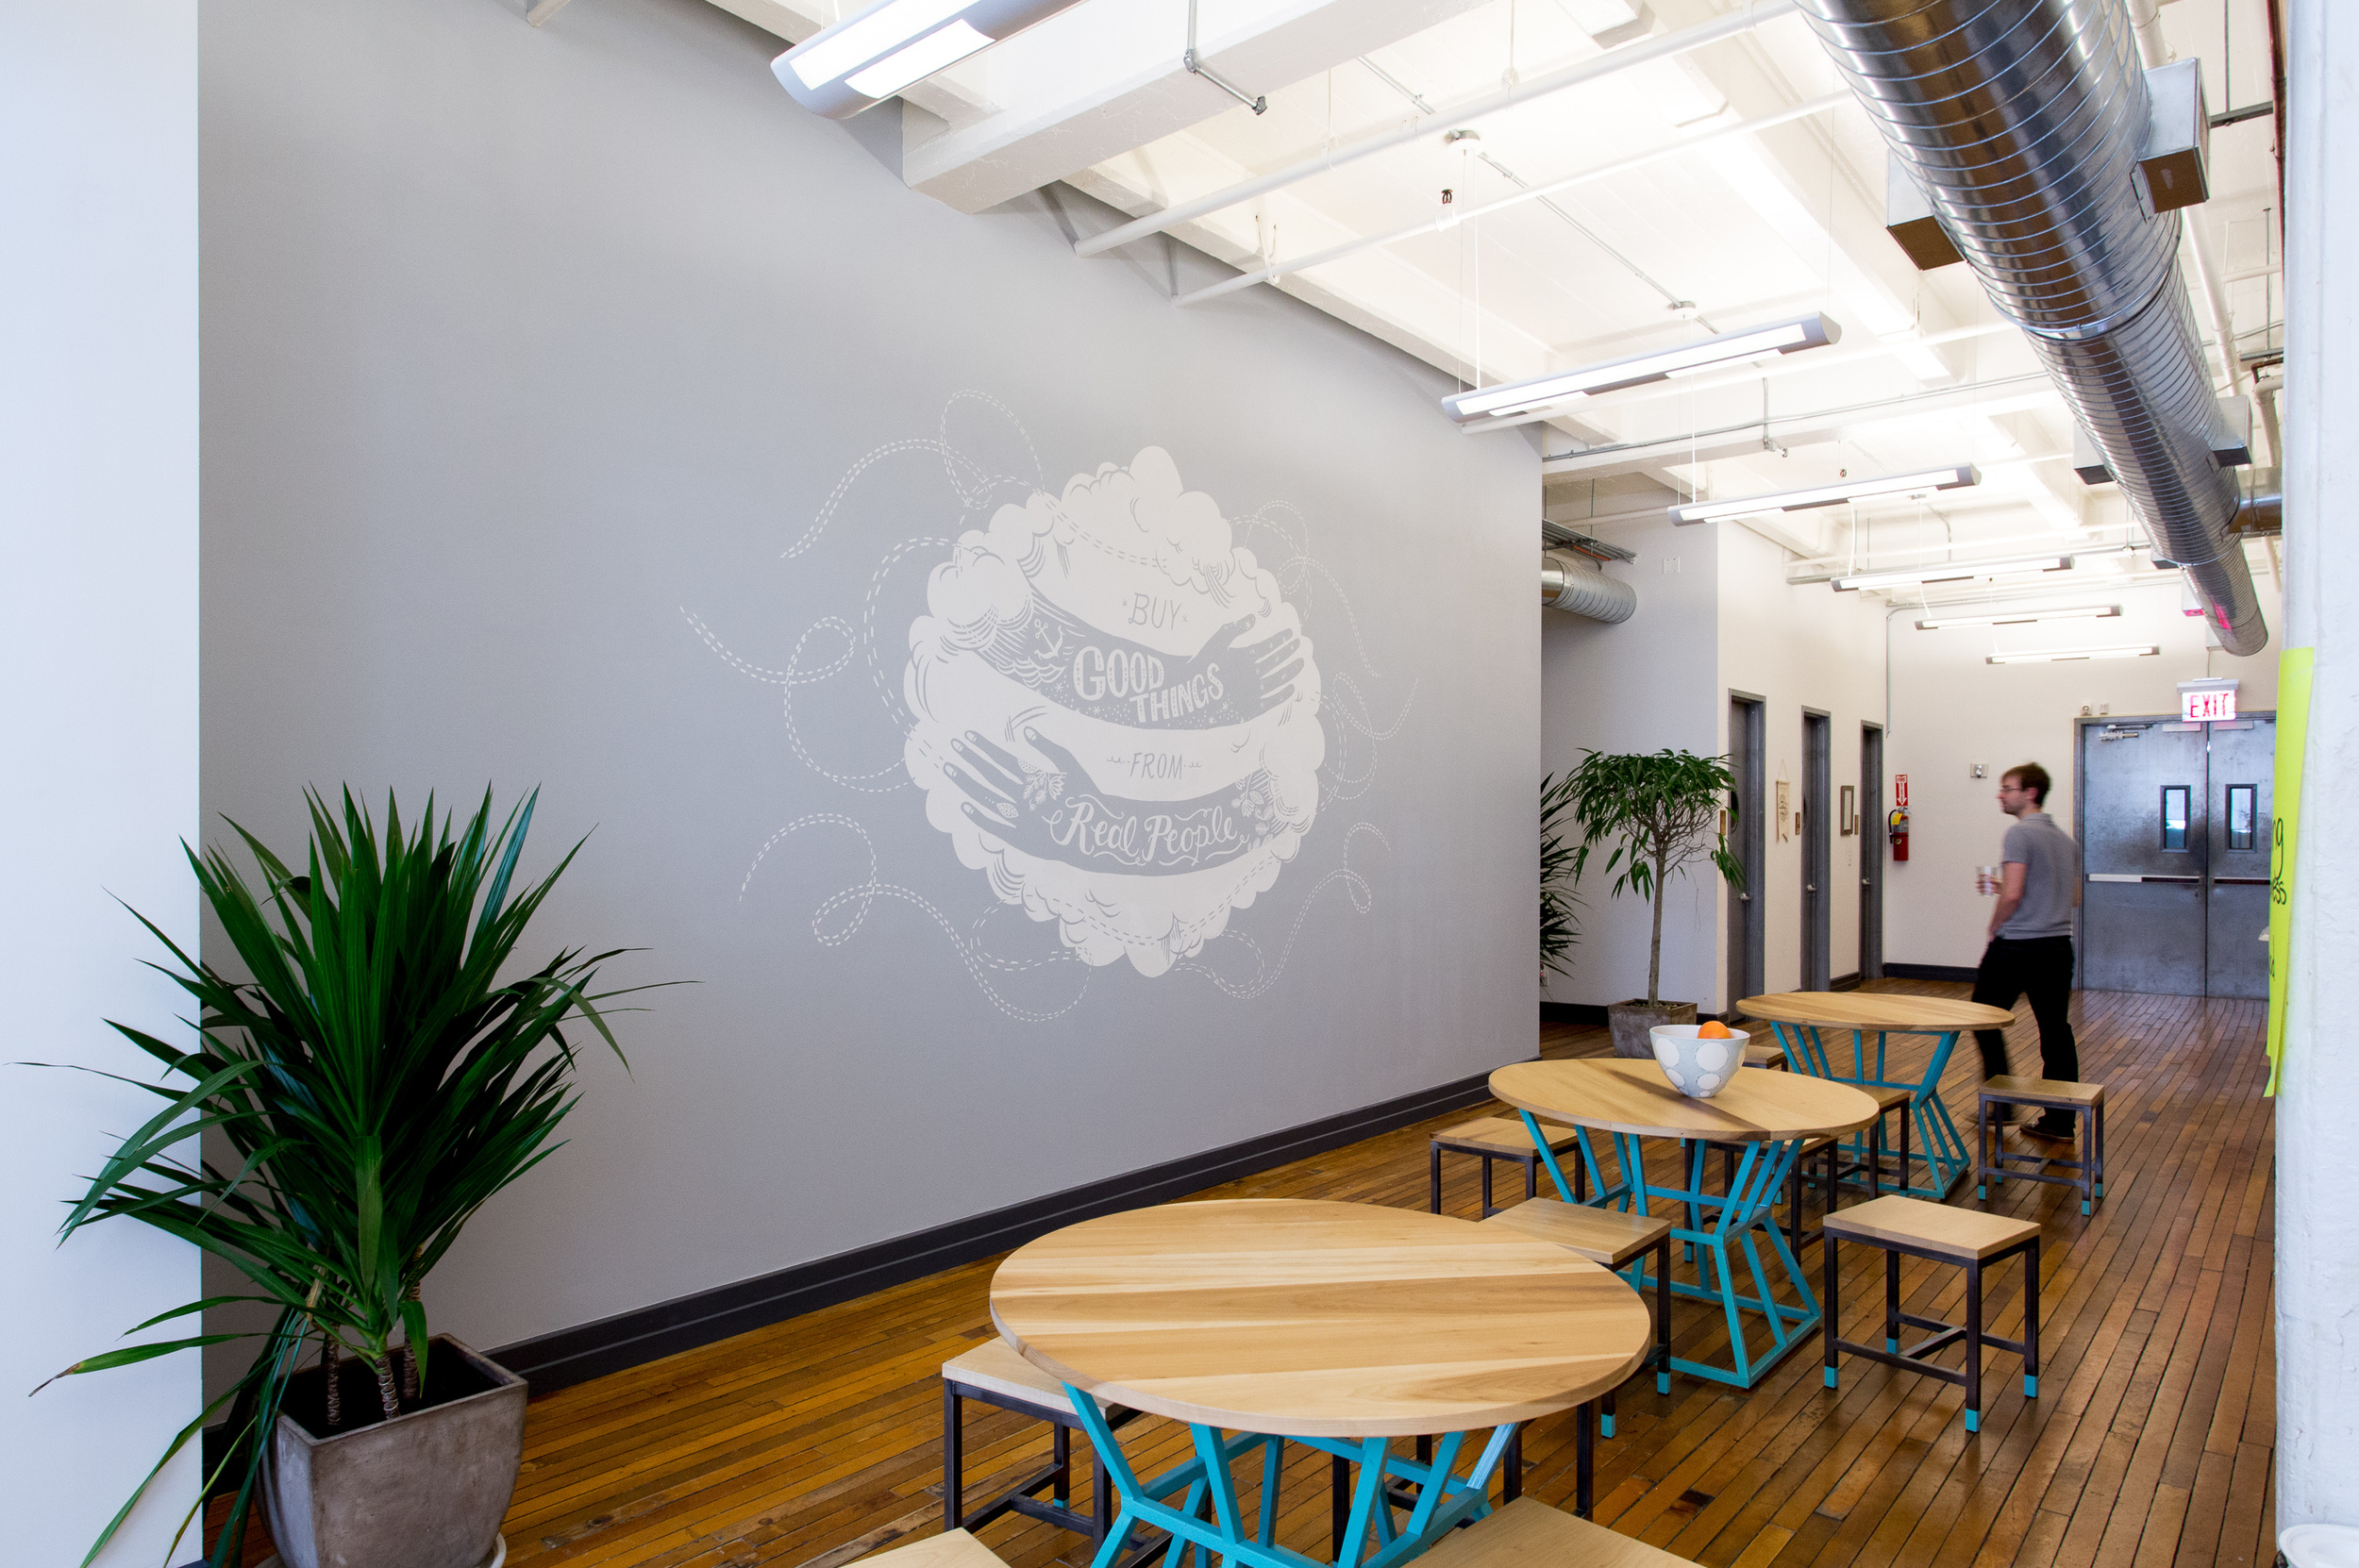 Etsy_HQ_values_mural_Nicole-licht